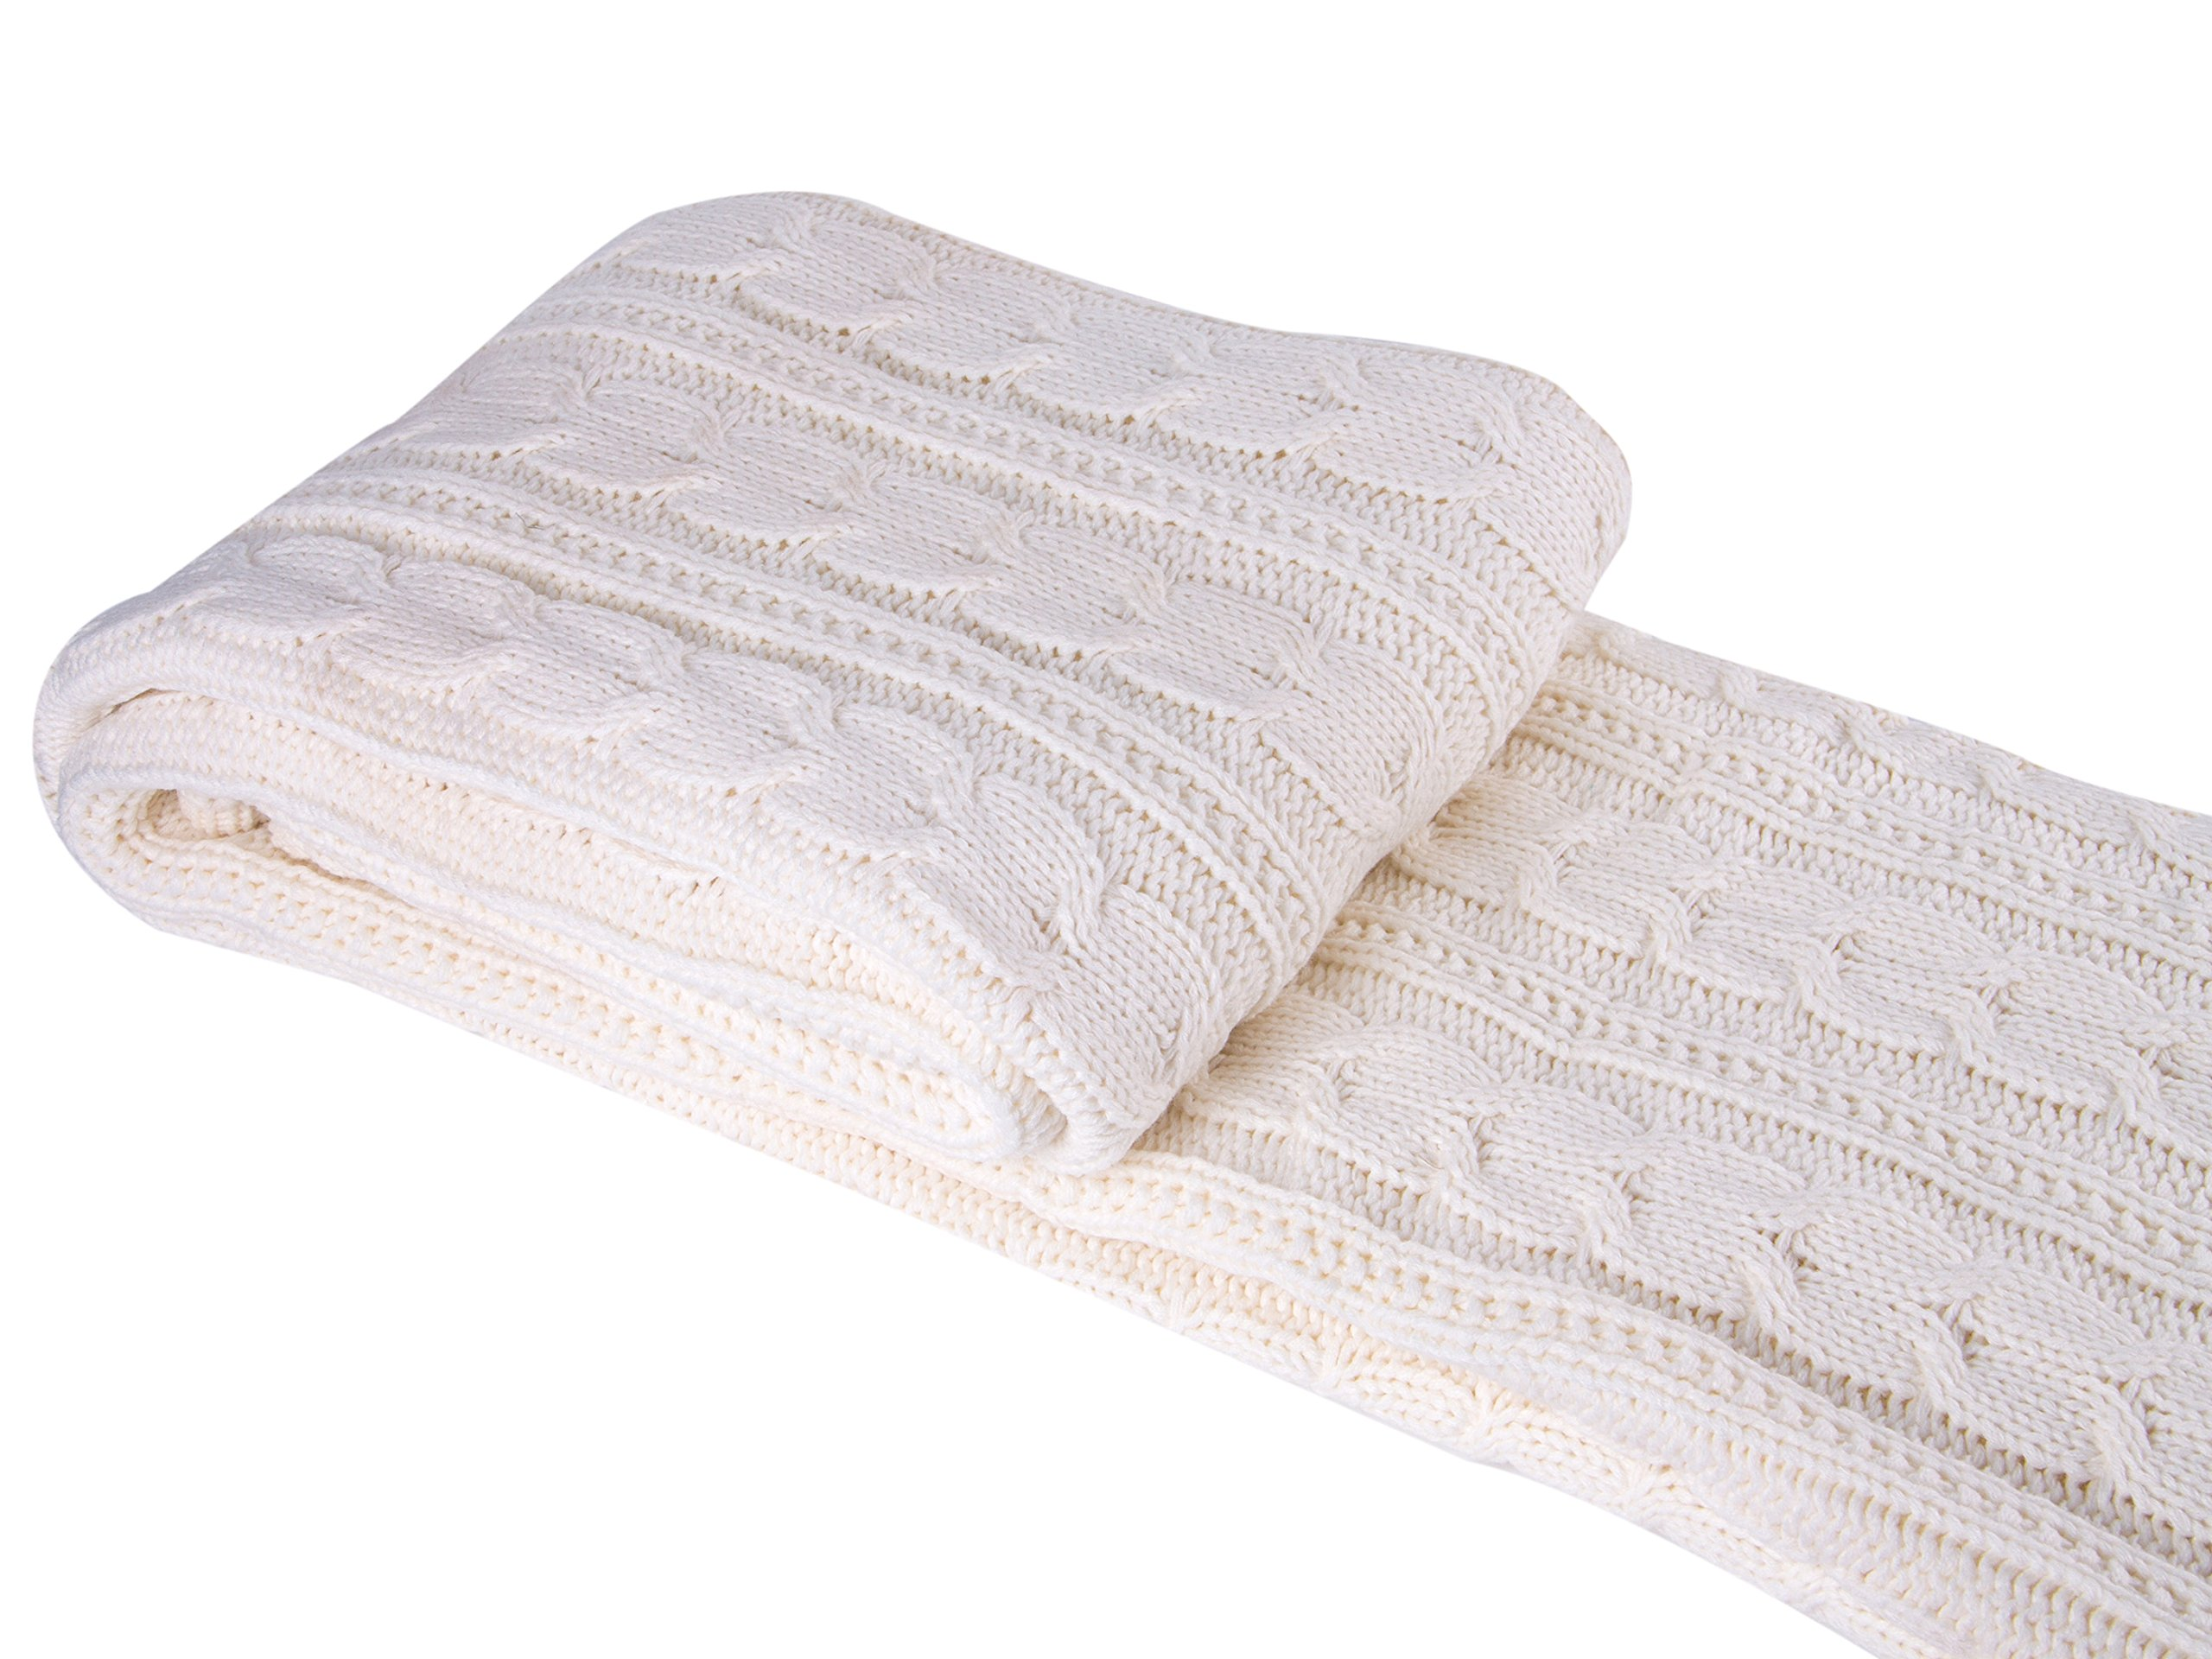 Comforbed Classic All Season Soft Cable Sweater Knitting Throw Blanket Quilted Throws with Sherpa Lining for Bed Sofa Couch Decor Cream 51x63 Inch by Comforbed